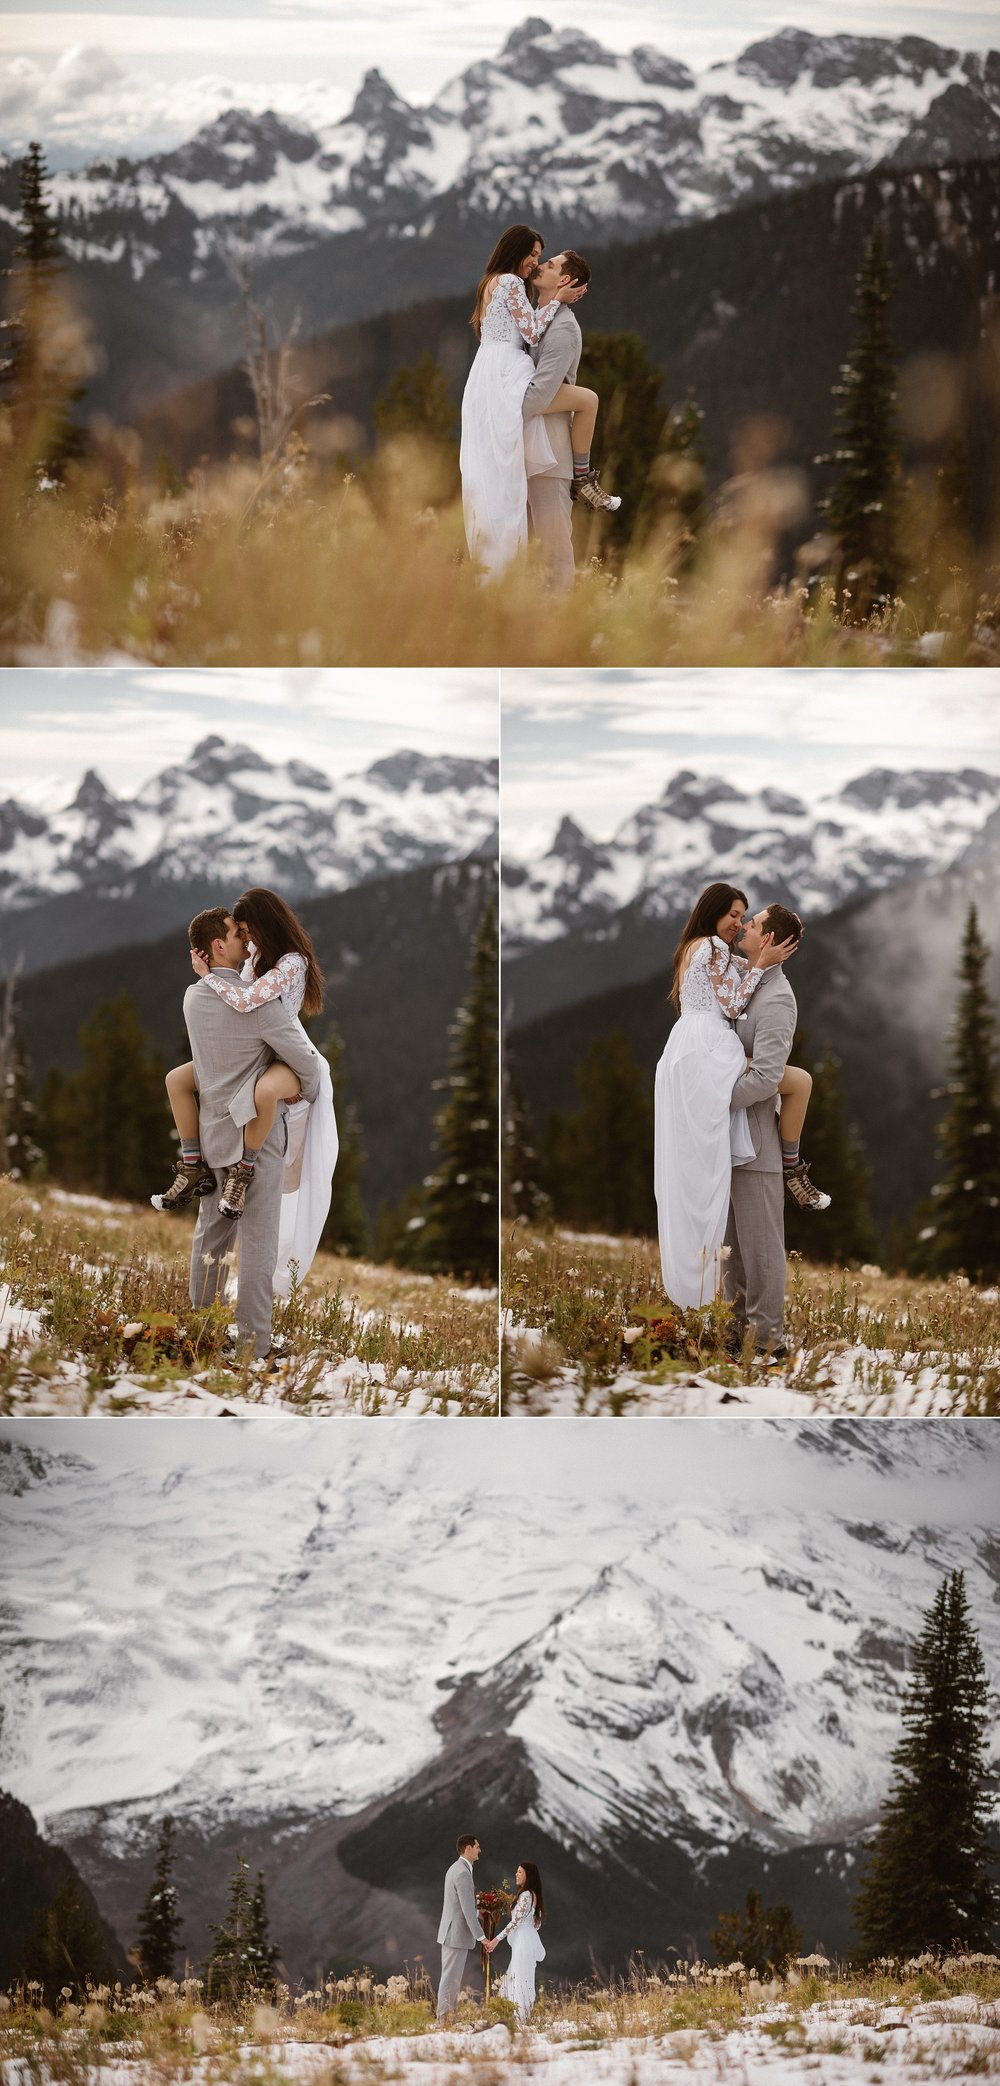 With no one around other than their traveling elopement photographer Maddie Mae, Resa jumped affectionately into Grant's arms, kicking up the snow with her hiking boots and reminding them of how much fun they have together on an adventure. They began their marriage with a hike through Mount Rainier National Park to a perfect spot in the forest for their intimate ceremony followed by a hike in the snow.